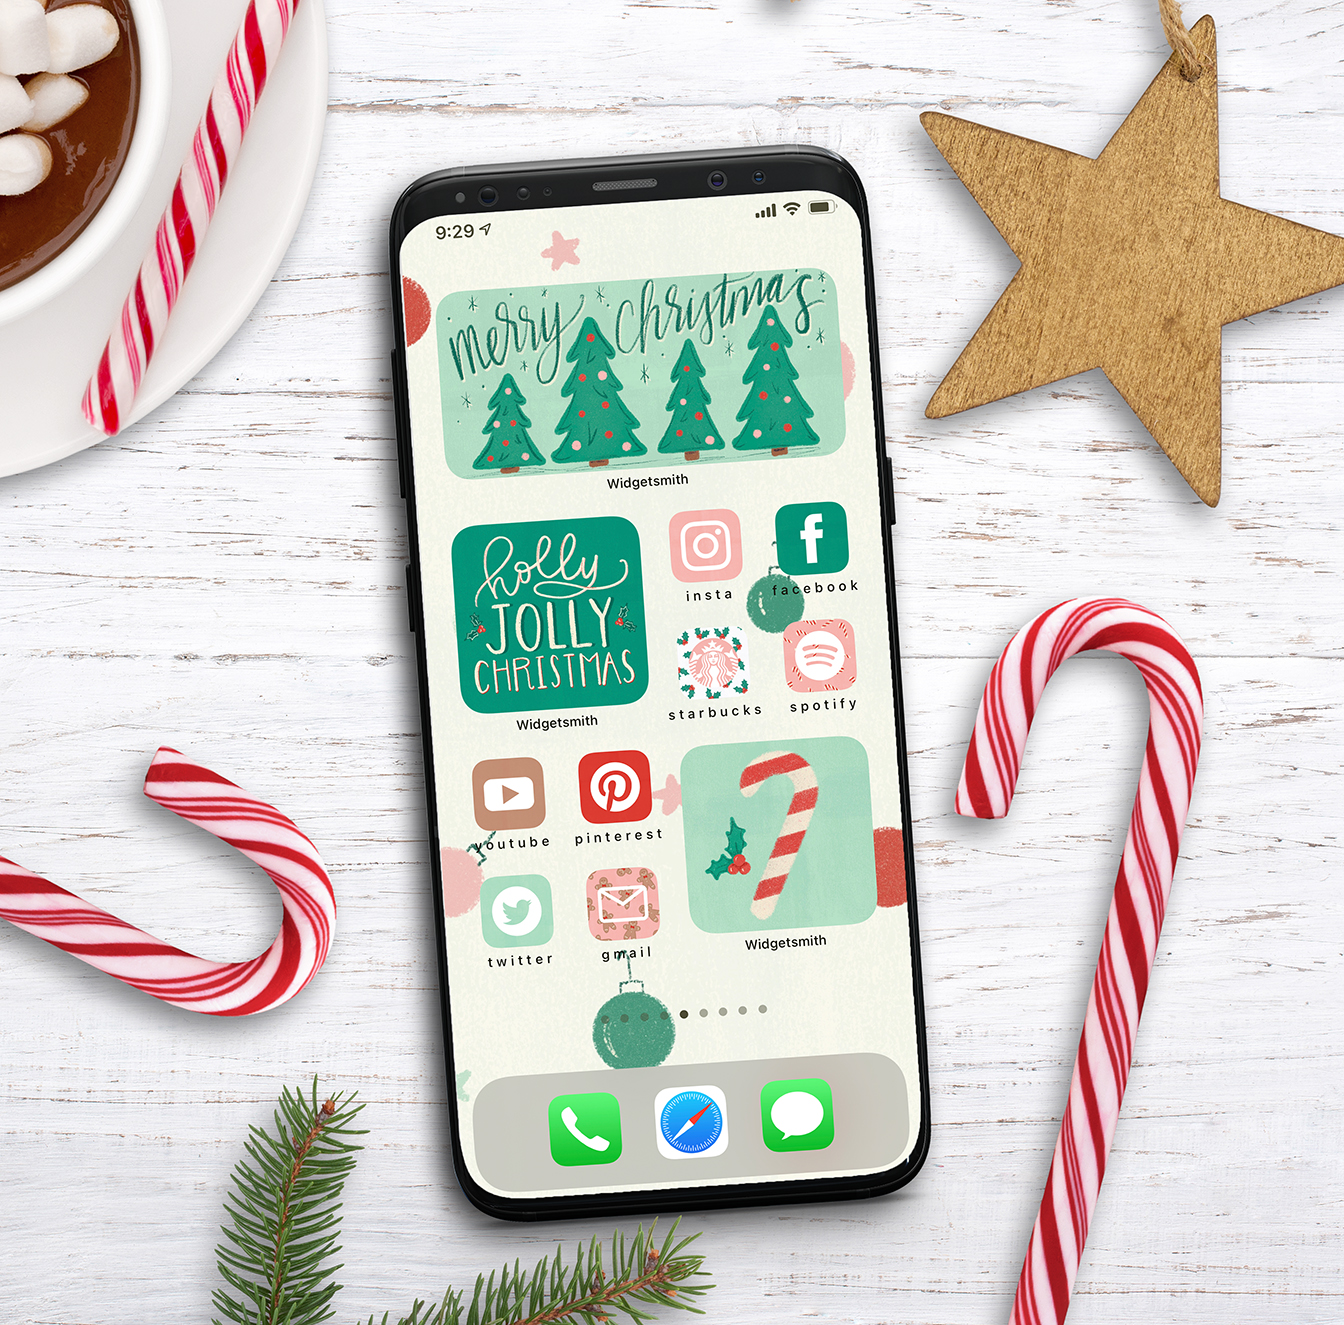 free ios christmas aesthetic widget and app icons free ios christmas aesthetic widget and app icons